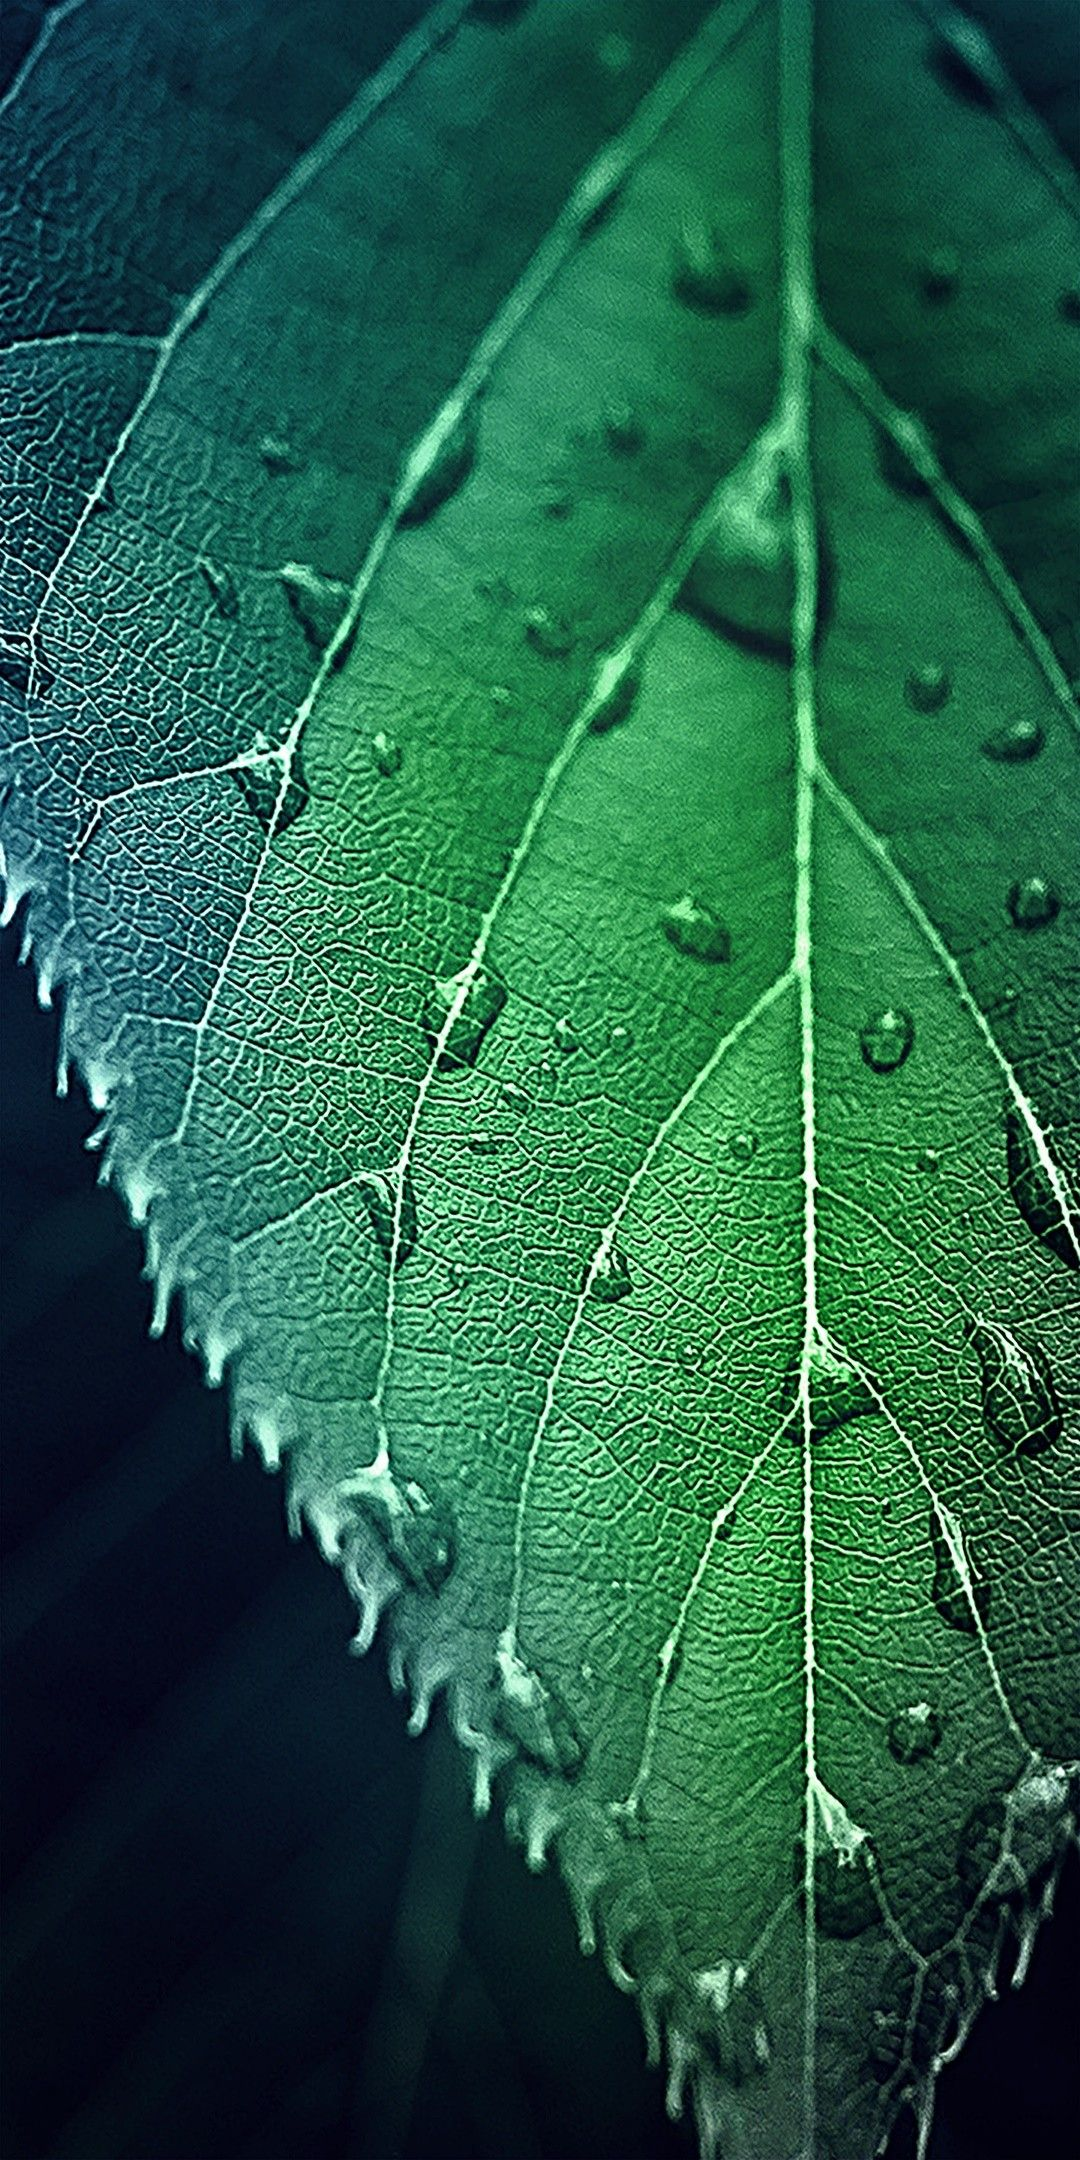 Hd Leaf Phone Wallpaper Rose Gold Wallpaper Iphone Dark Wallpaper